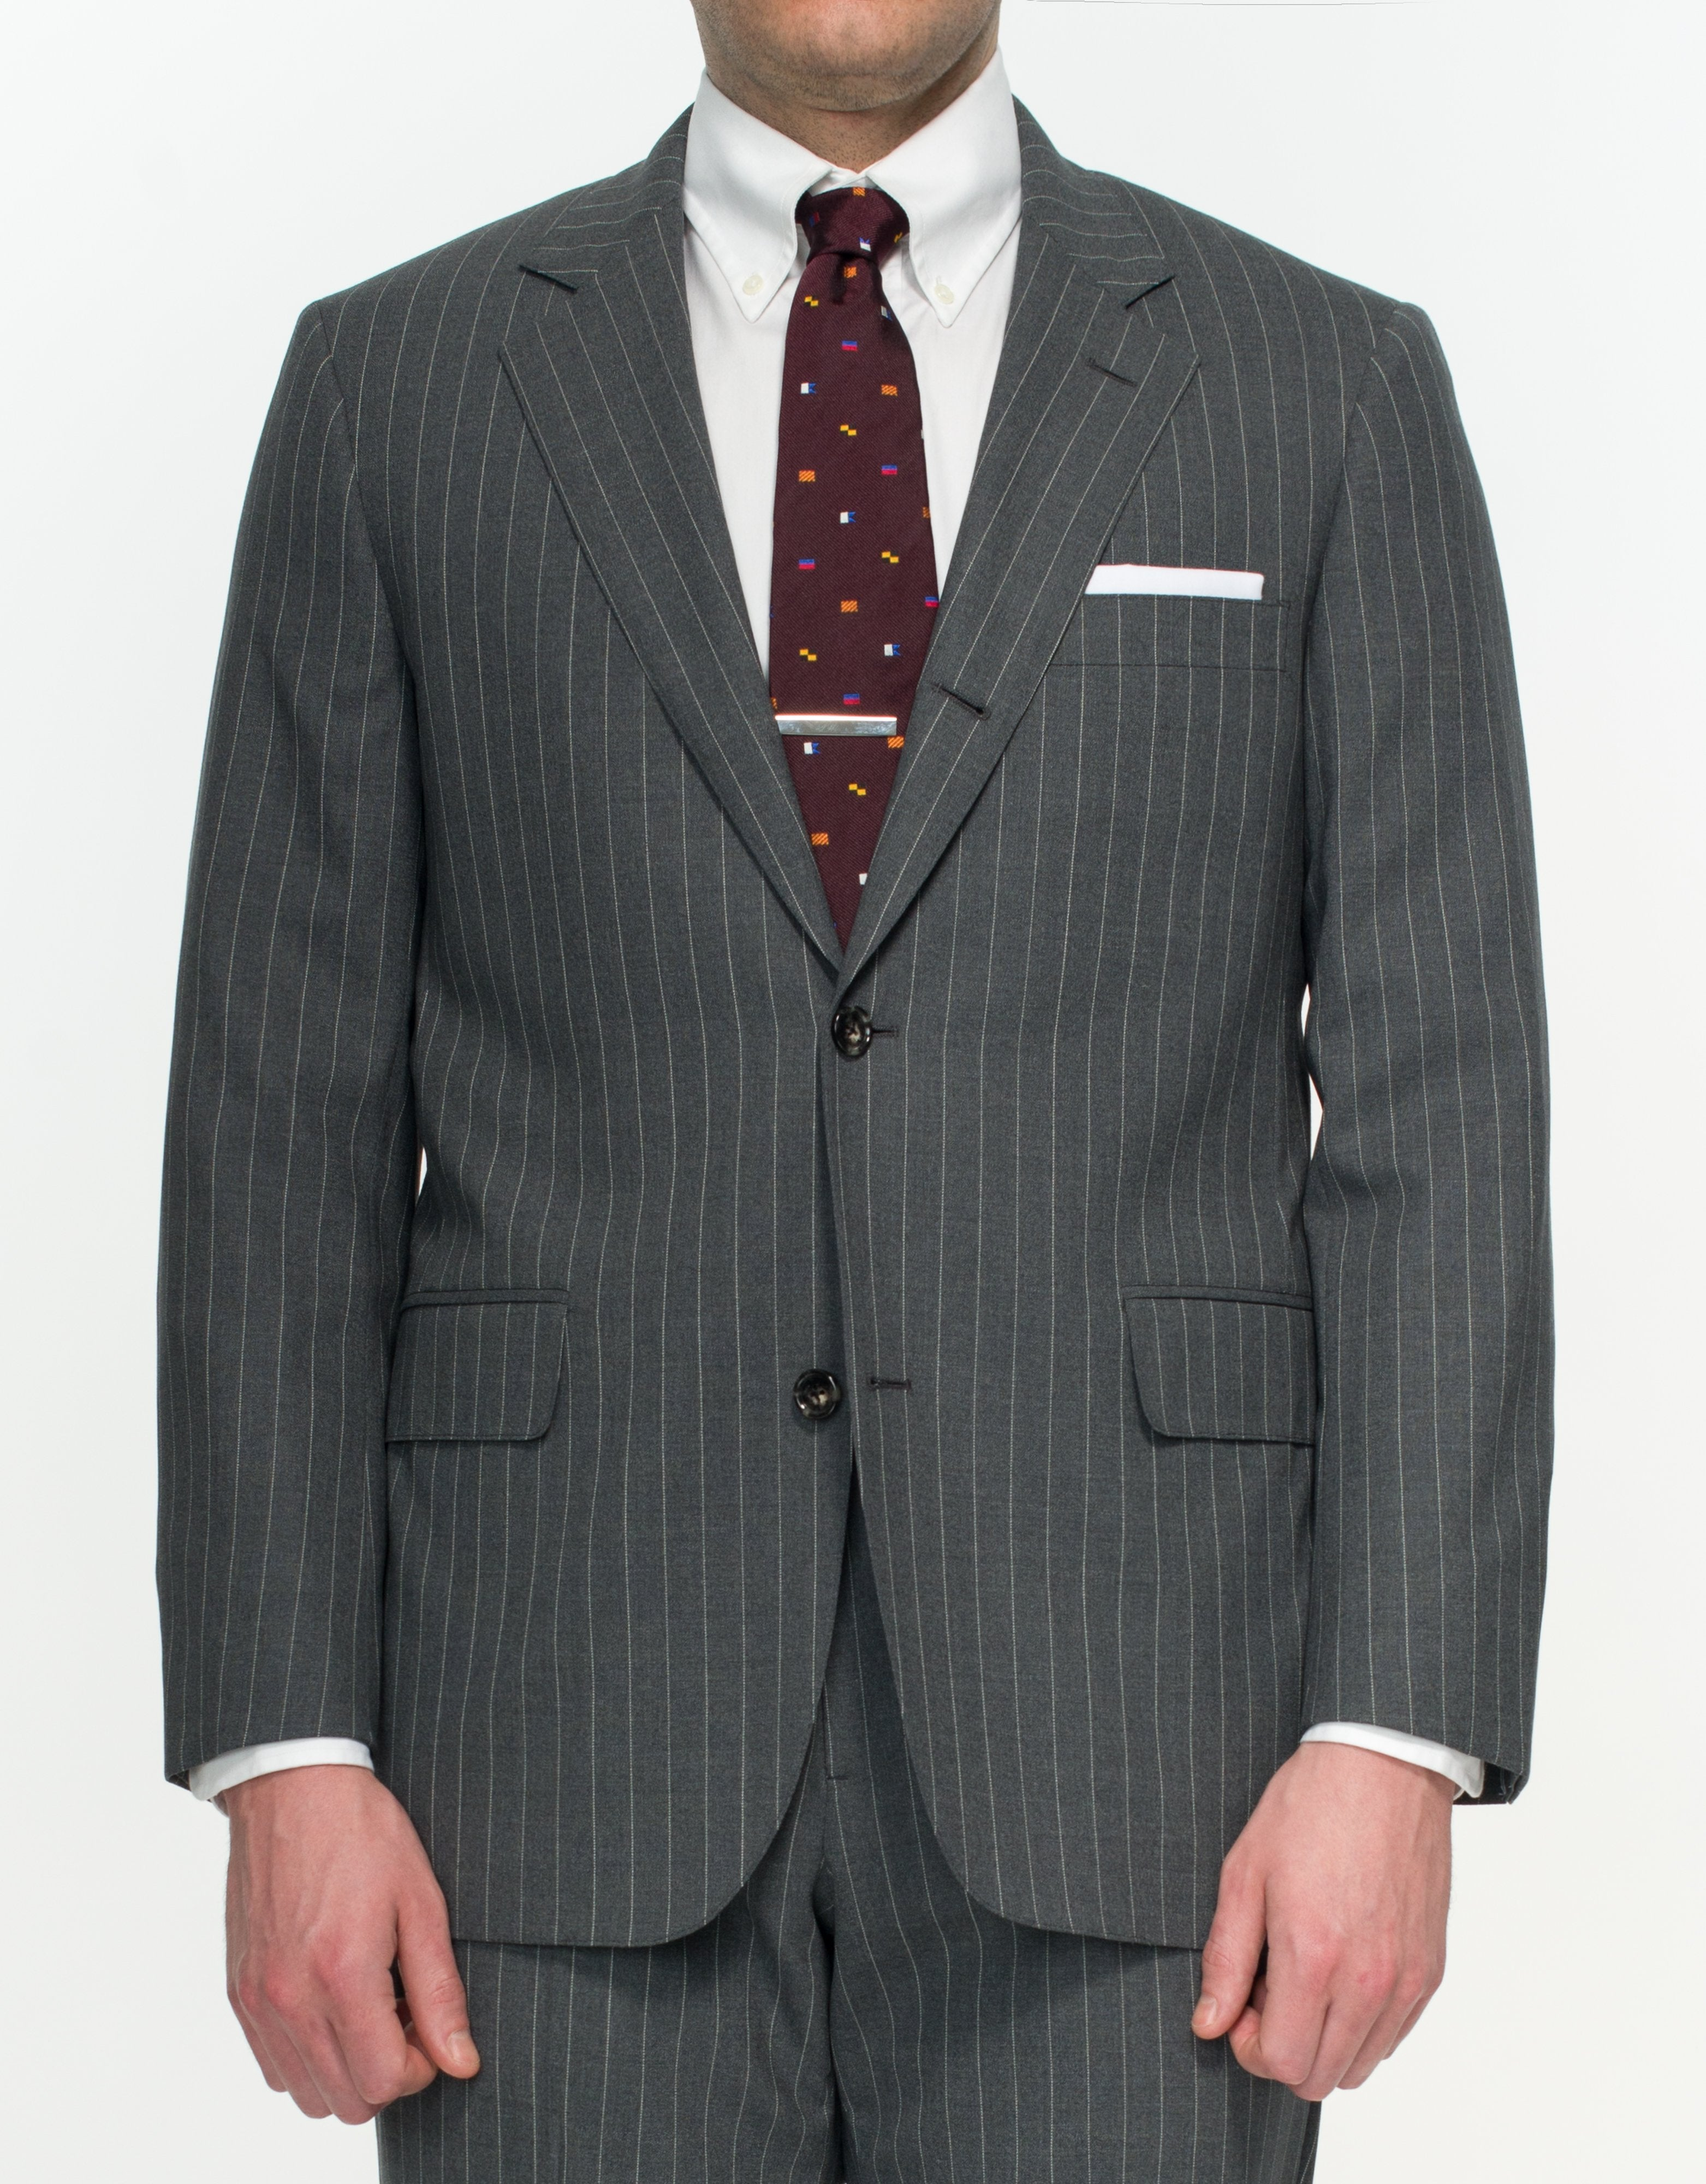 PRESSIDENTIAL SUIT- GREY STRIPE